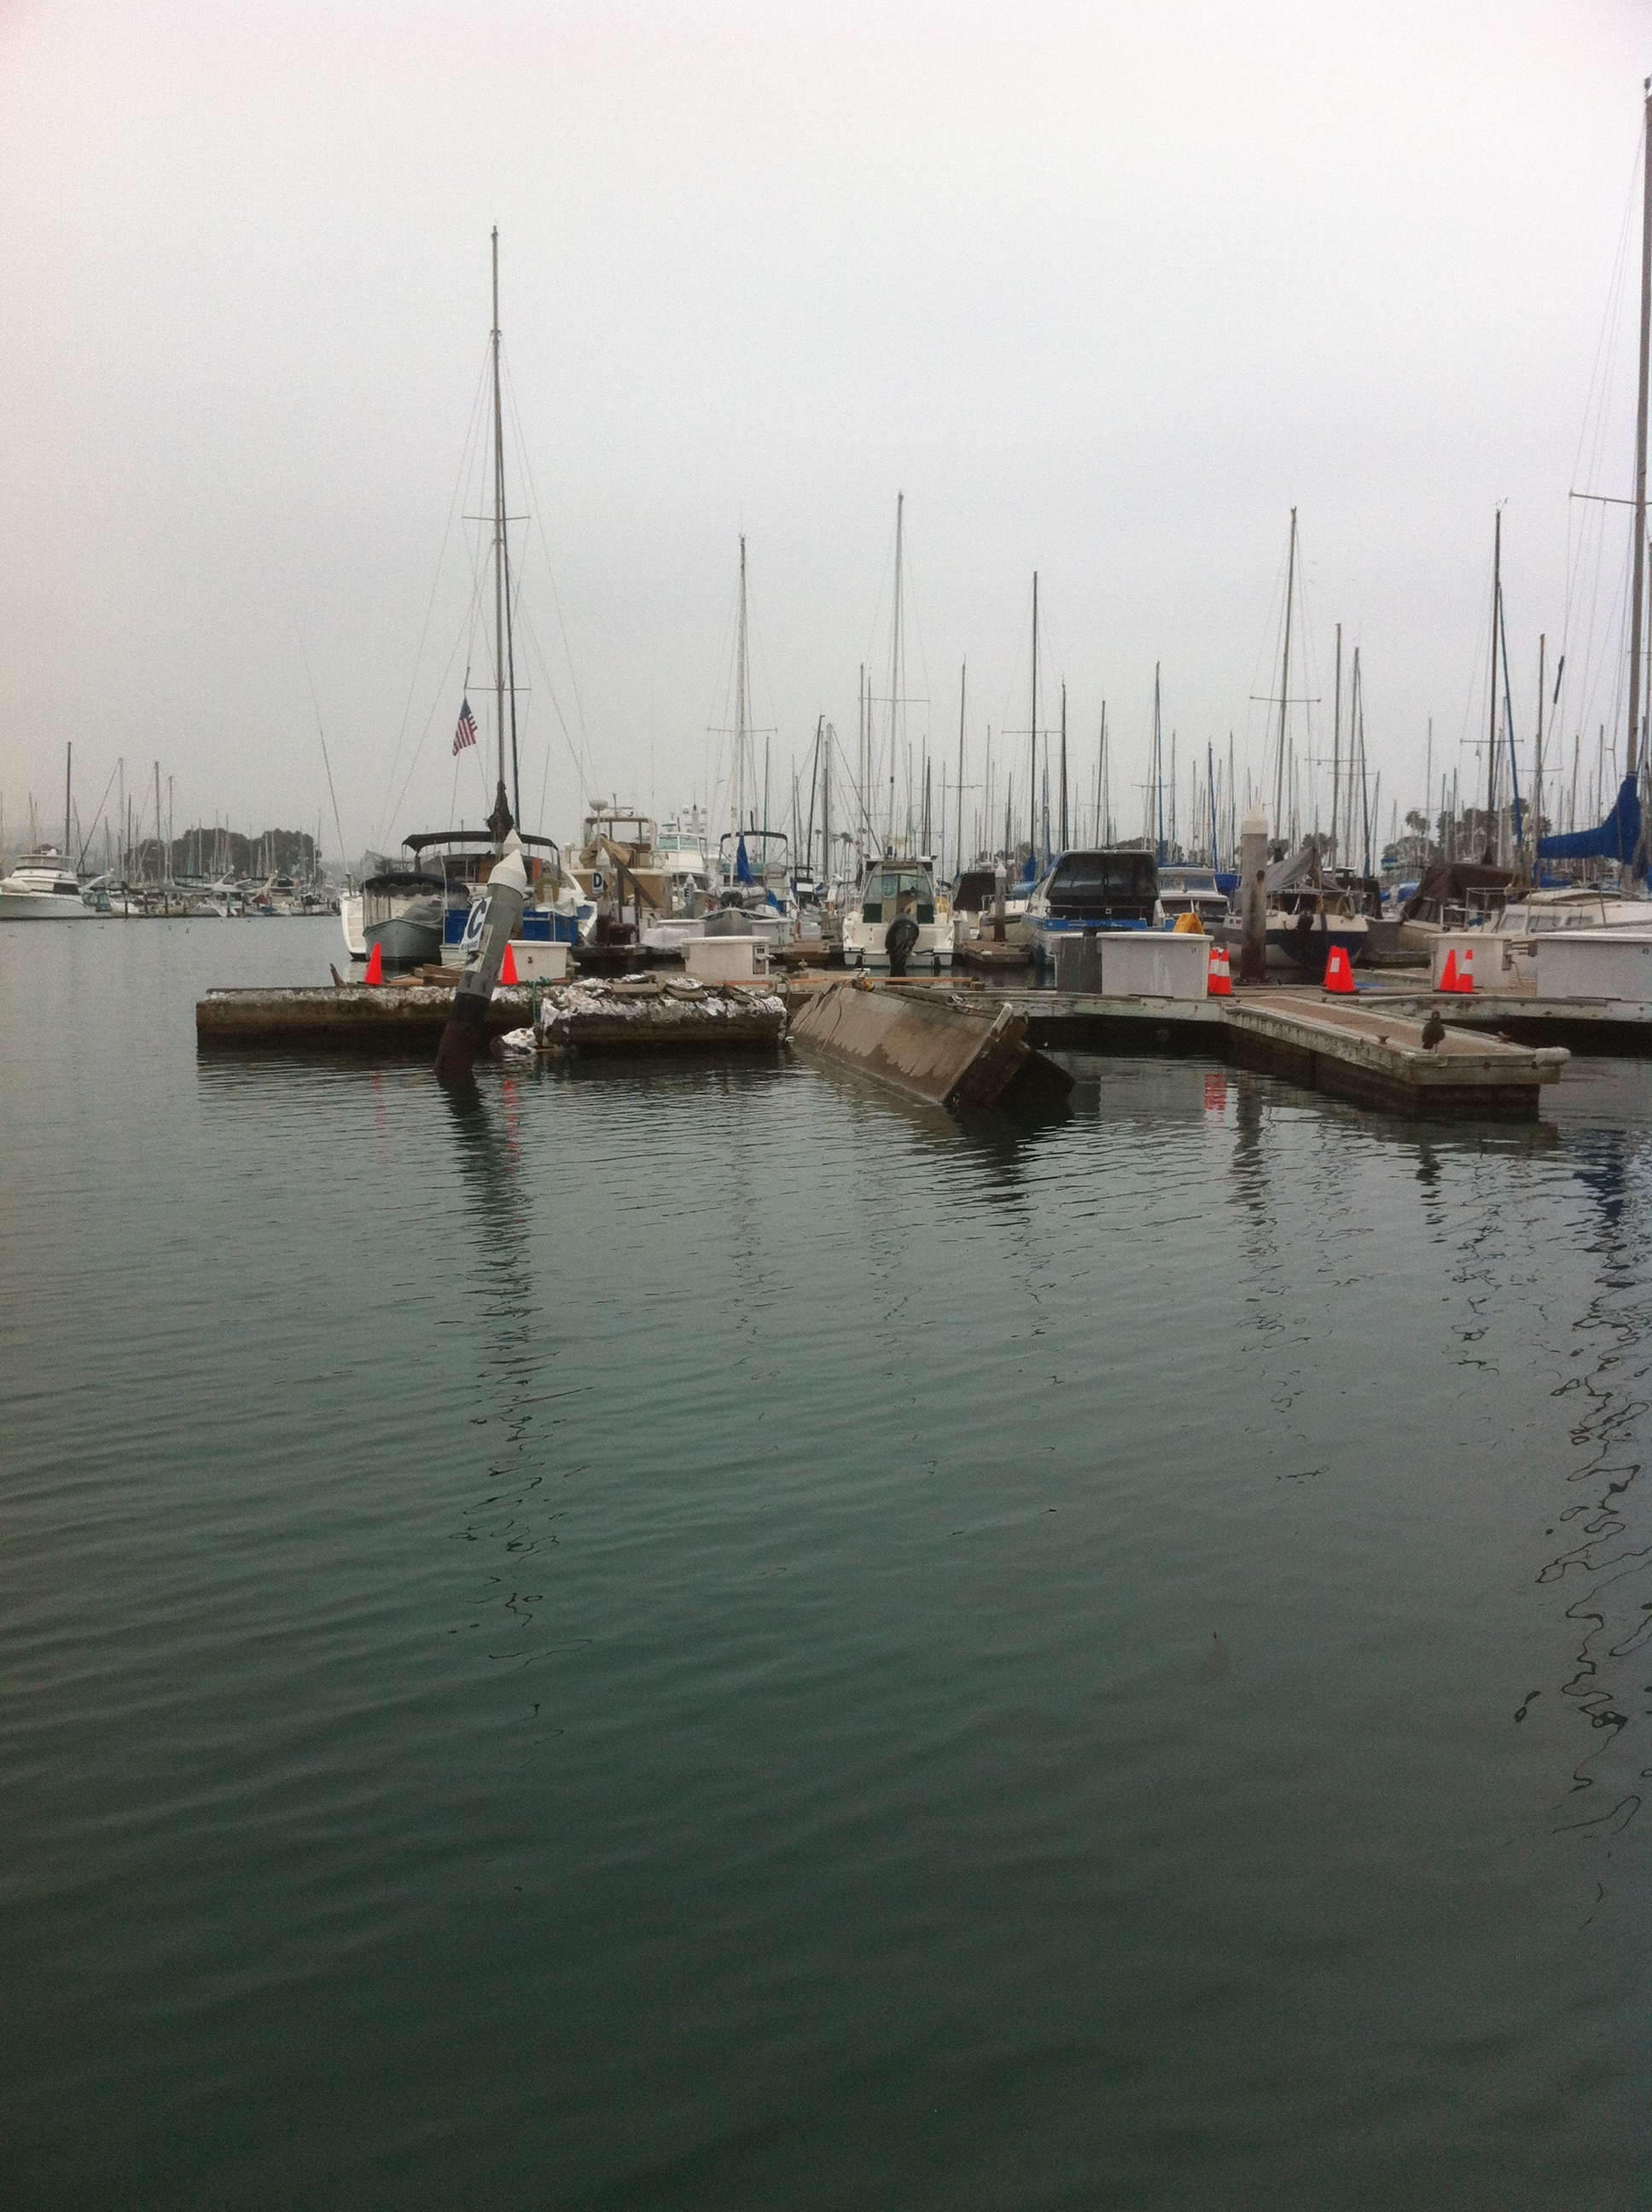 Sportfisher Crashes into Dana Point Docks